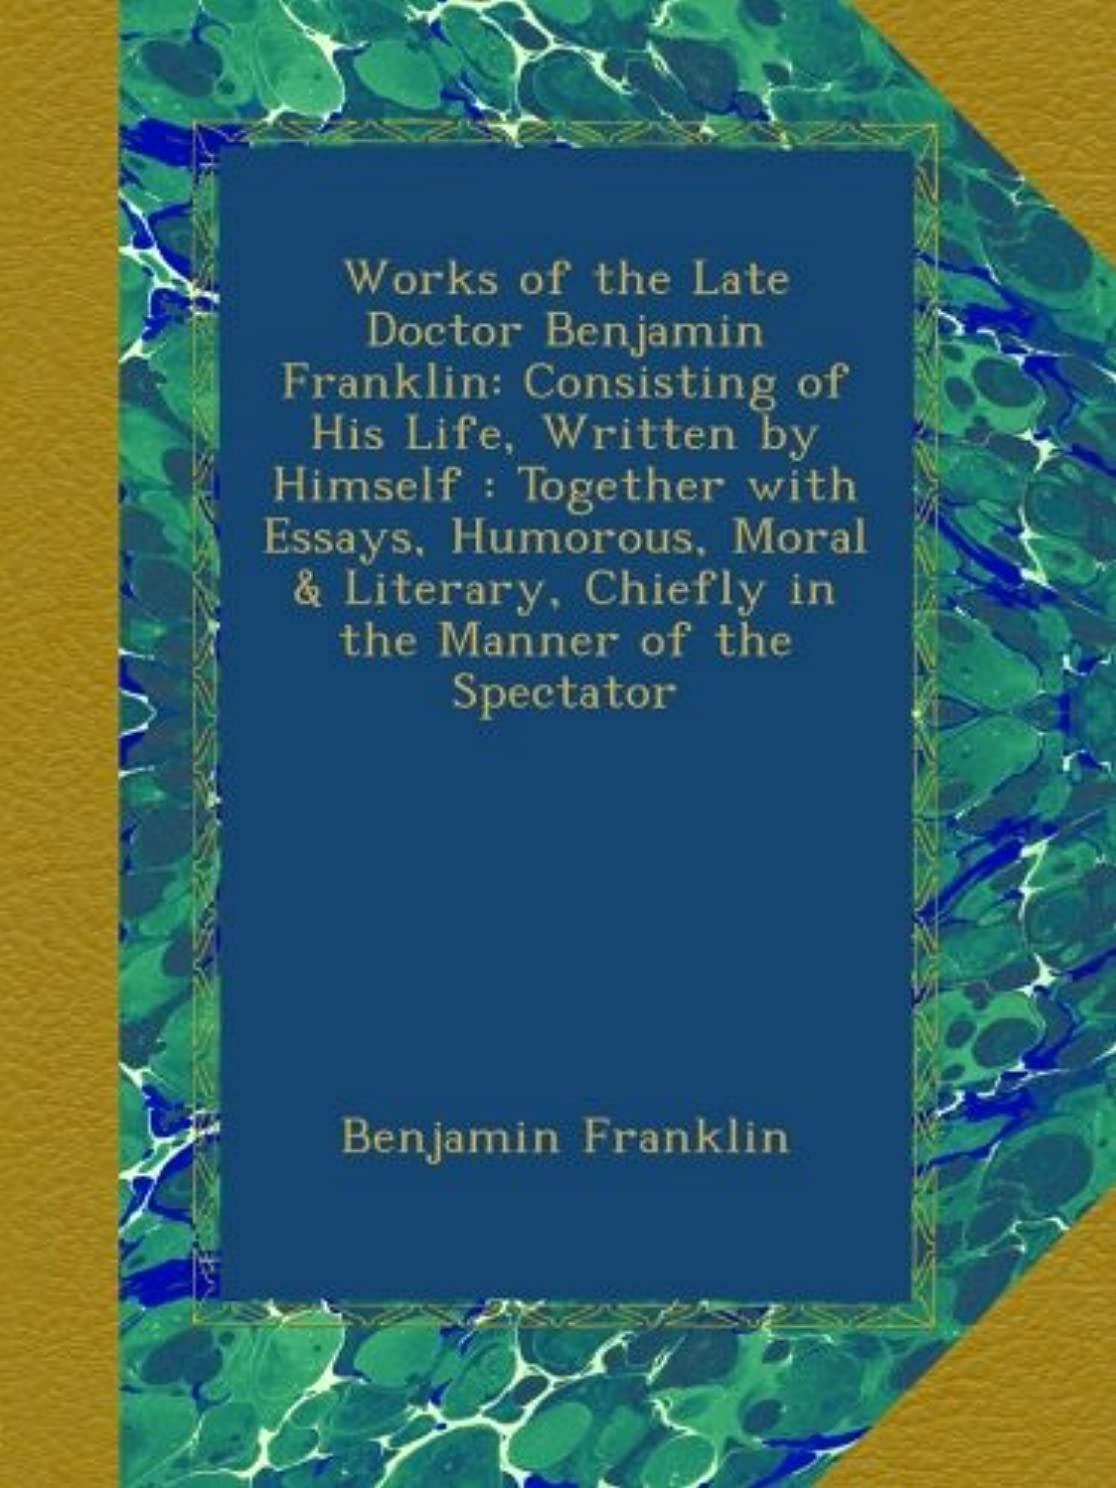 時間とともにデザイナー手伝うWorks of the Late Doctor Benjamin Franklin: Consisting of His Life, Written by Himself : Together with Essays, Humorous, Moral & Literary, Chiefly in the Manner of the Spectator